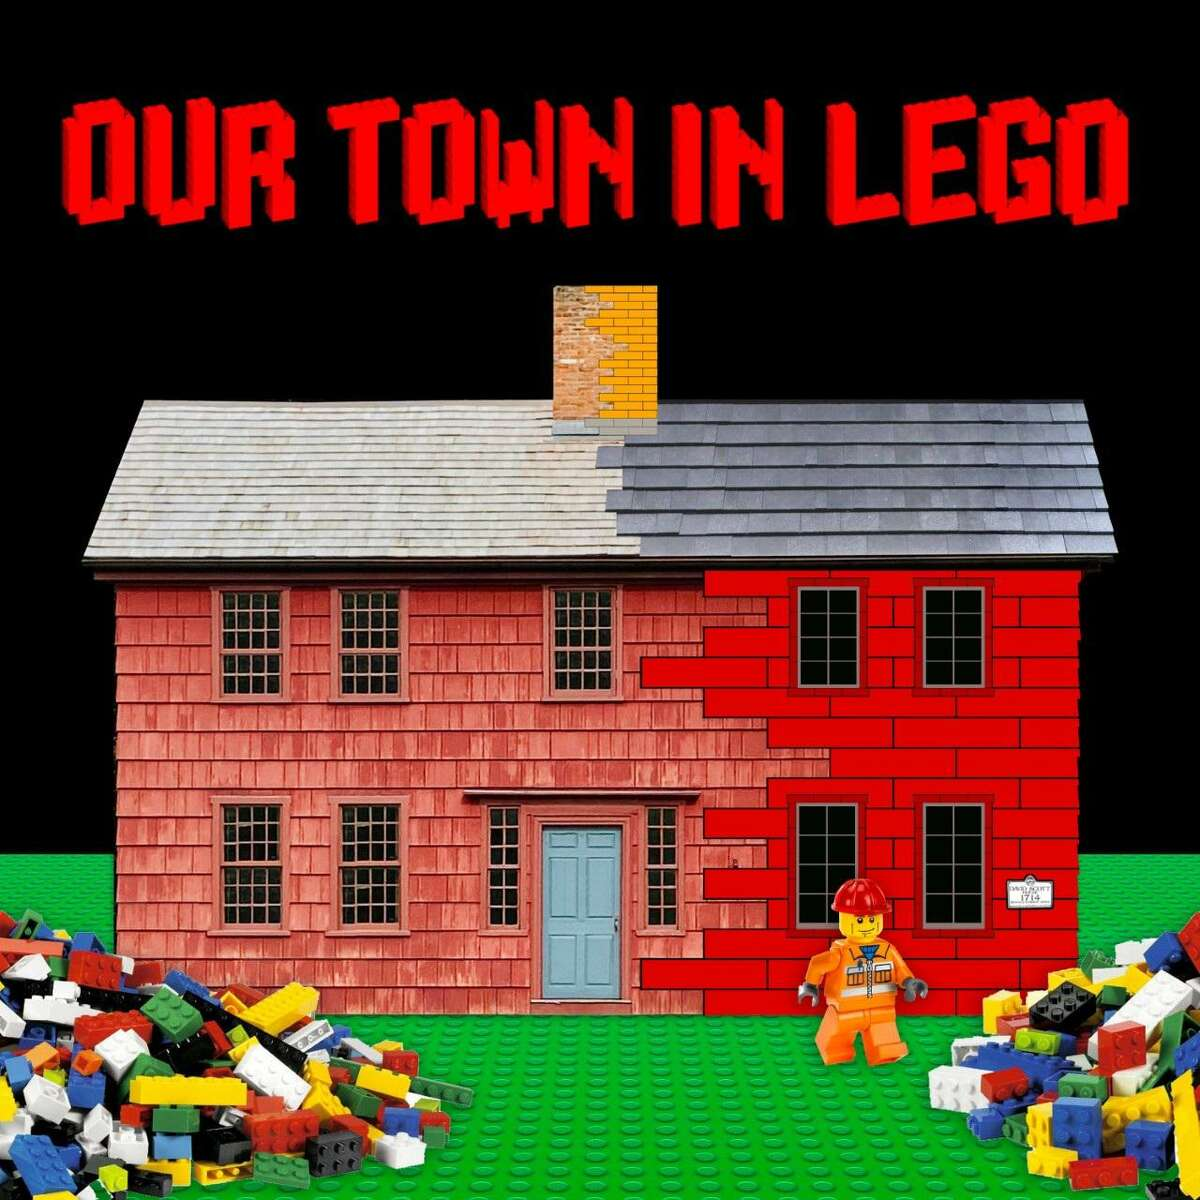 Historical images in lego world